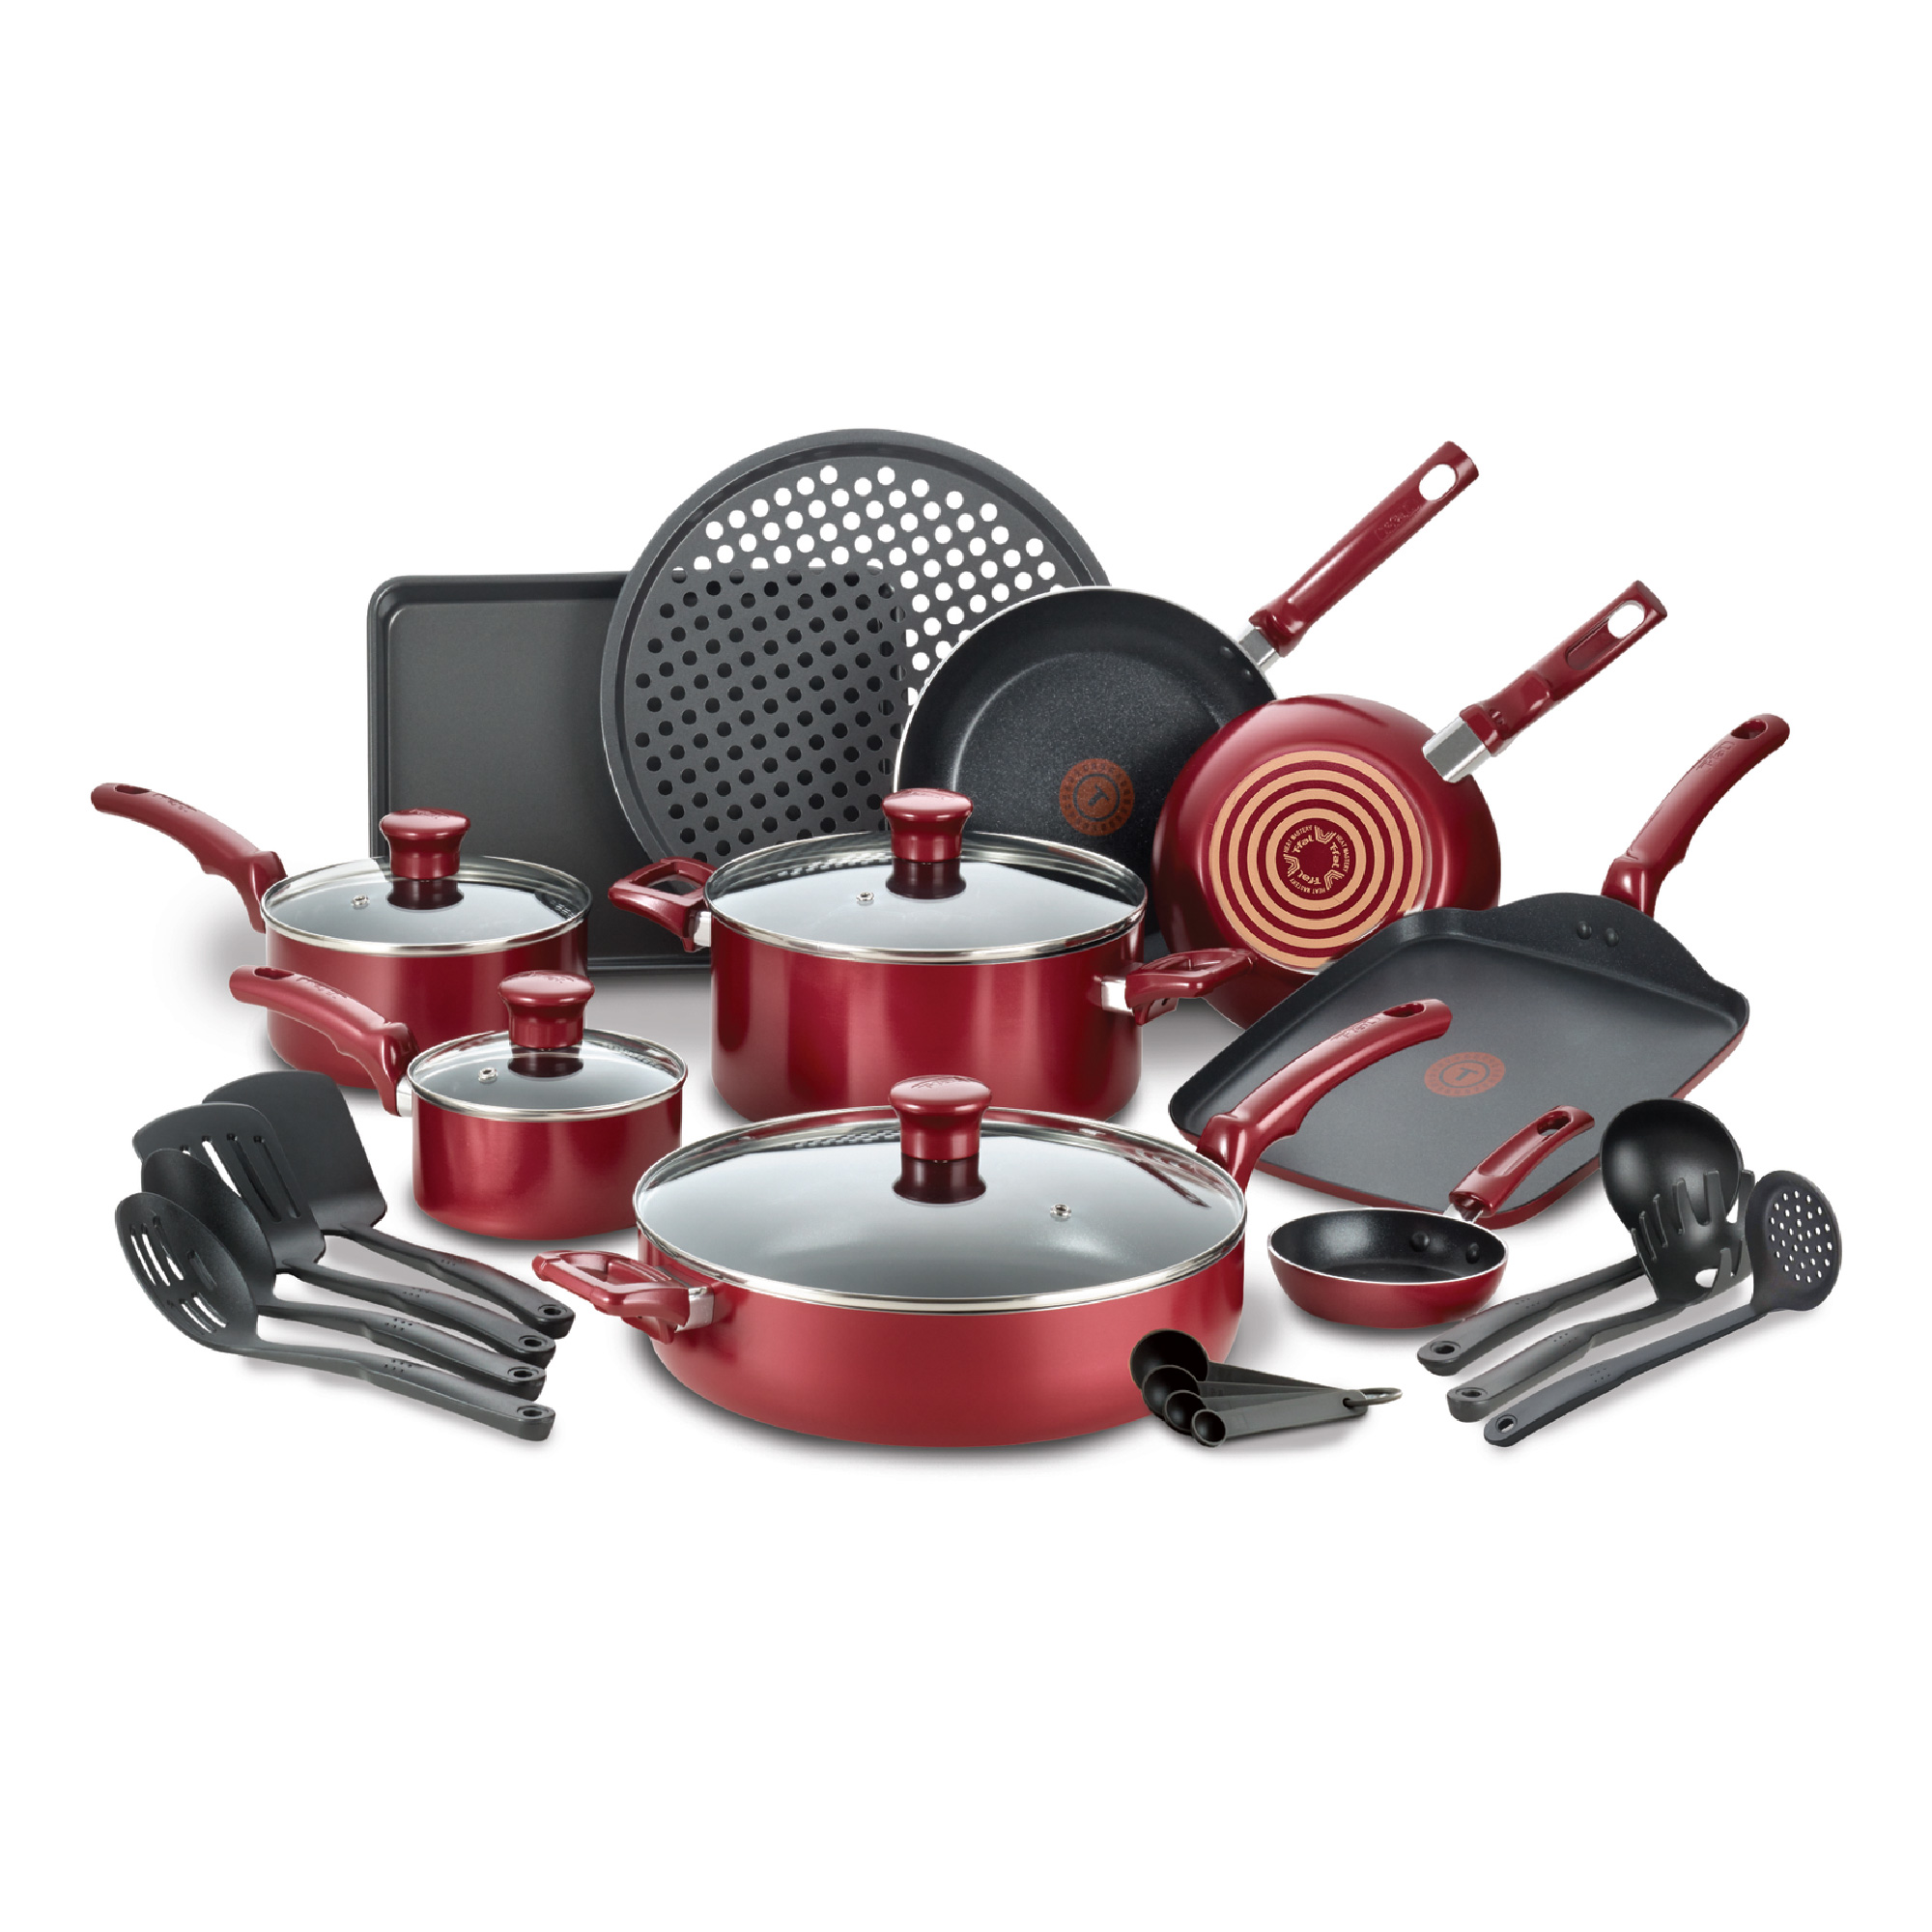 T-fal Kitchen Solutions 22-Piece Nonstick Cookware Set, Thermospot, Red